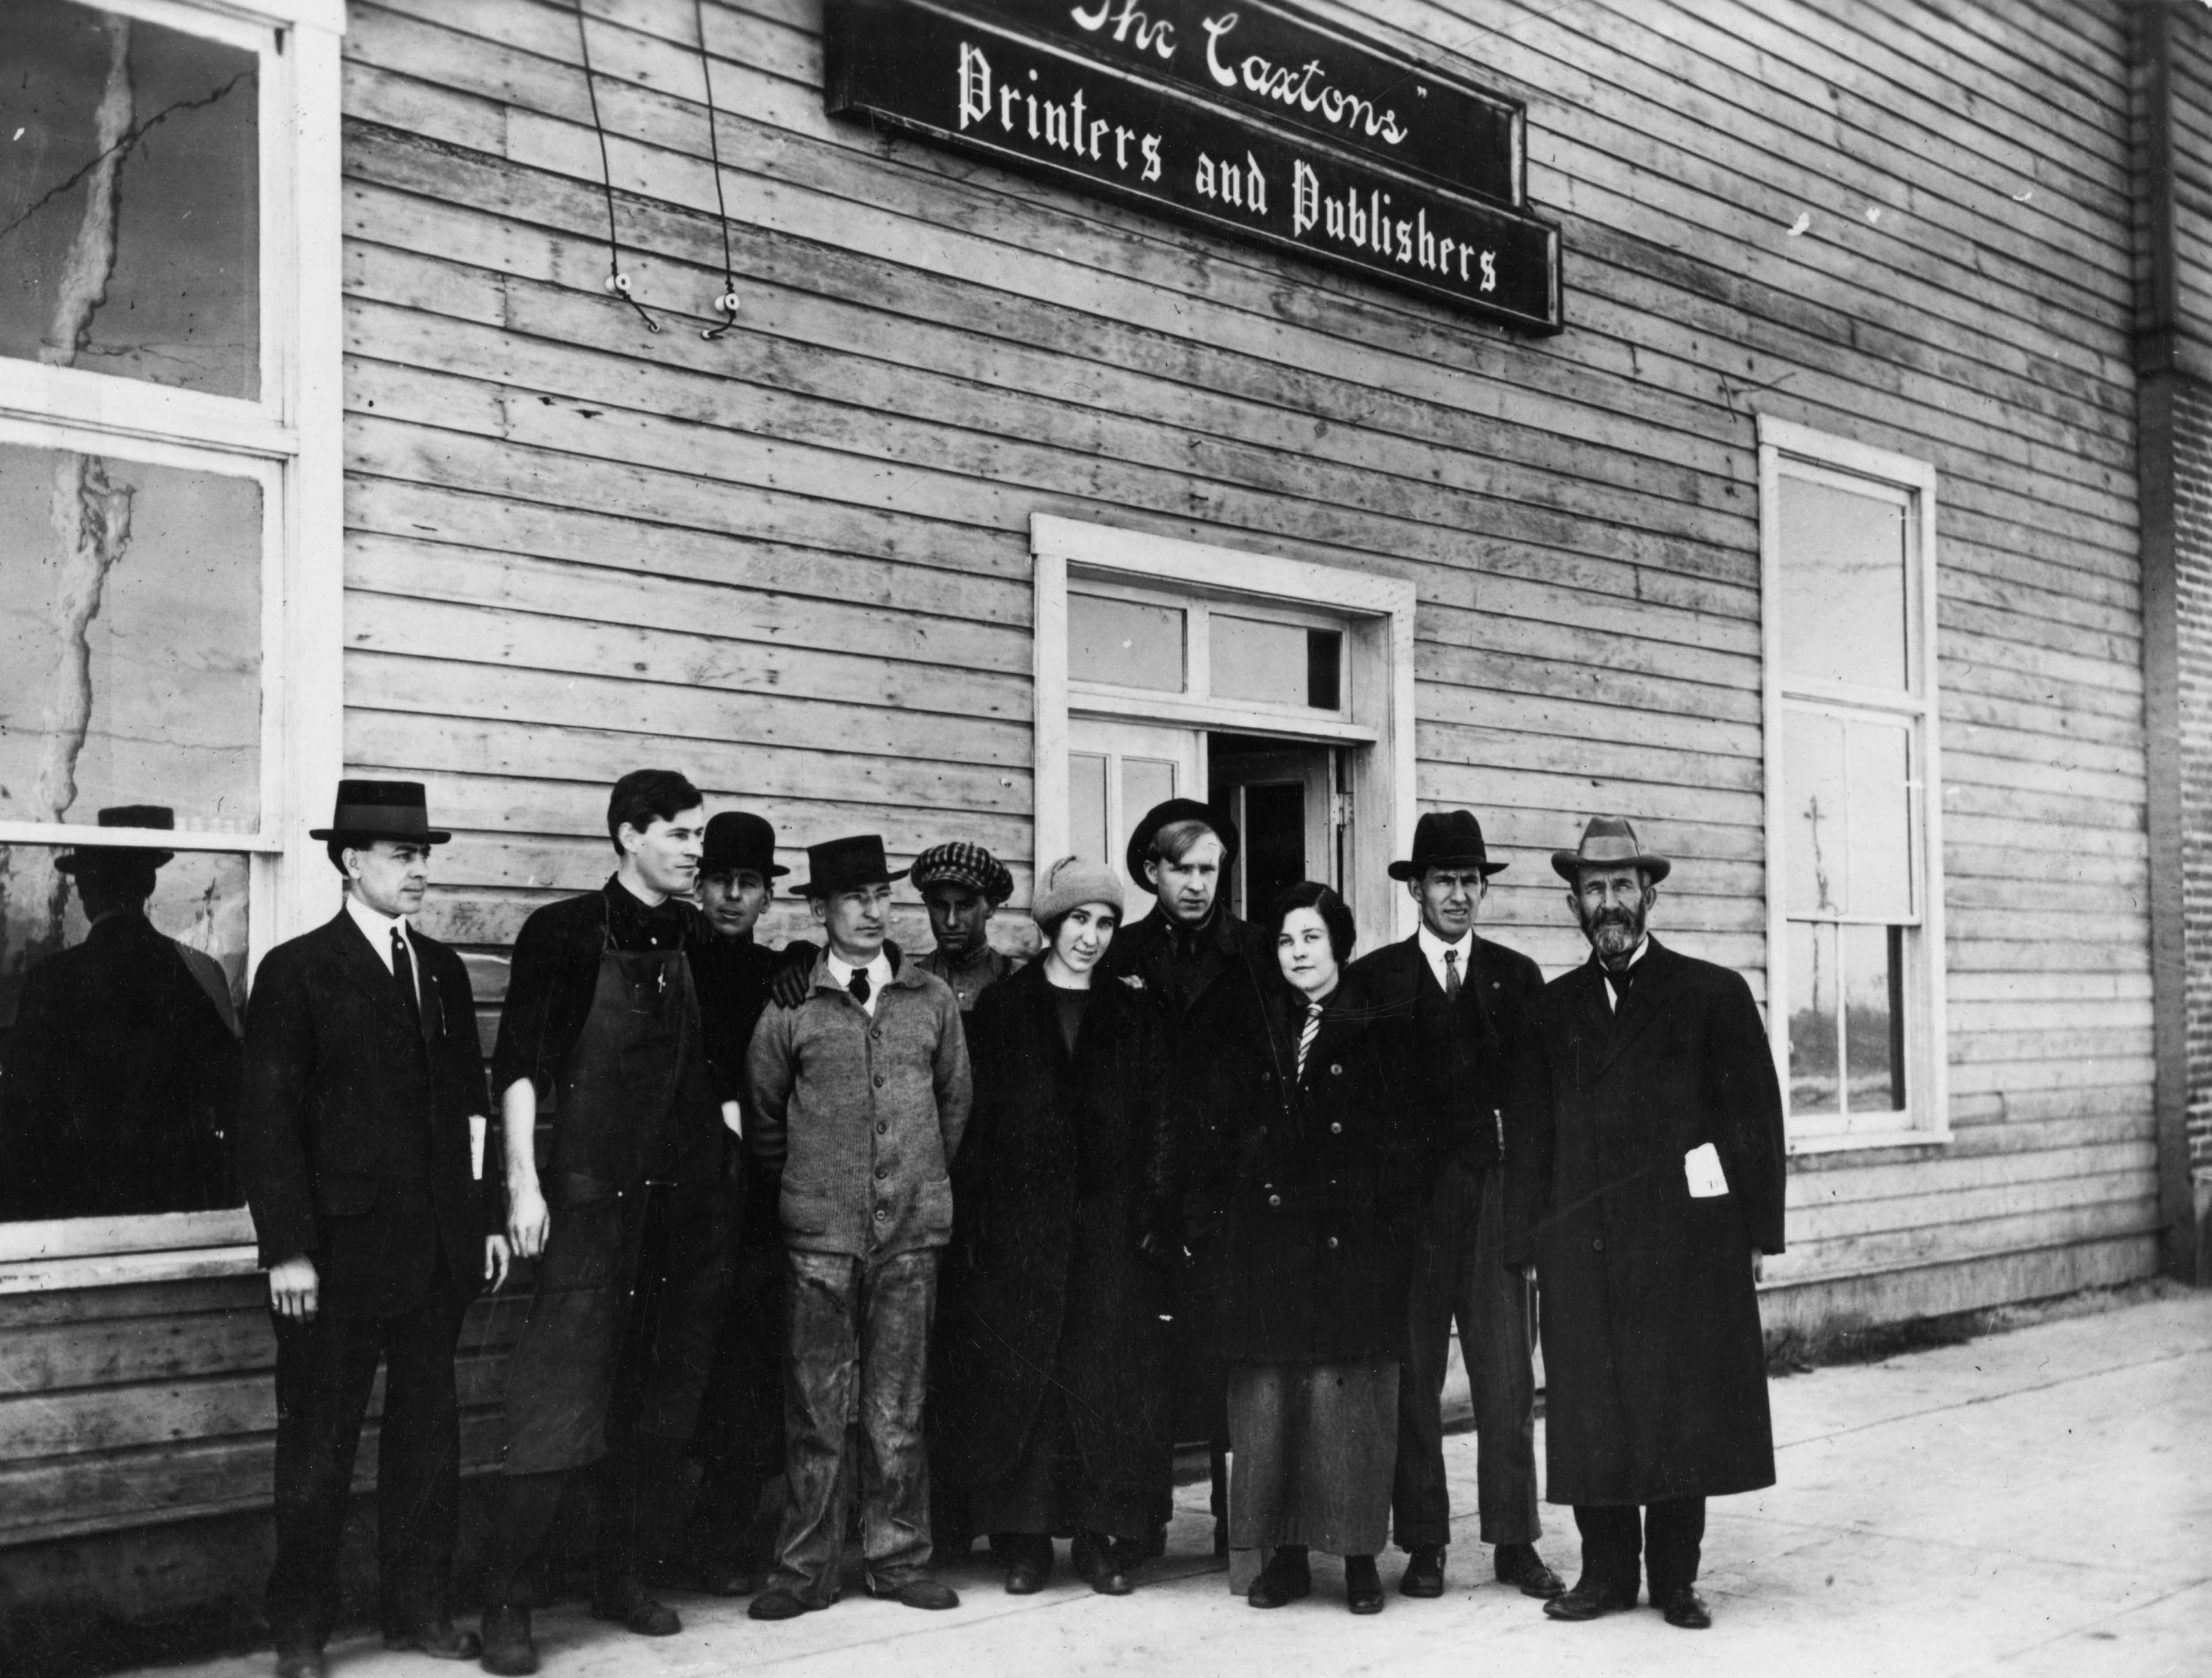 Historic photo of Caxton Printers owners, staff.